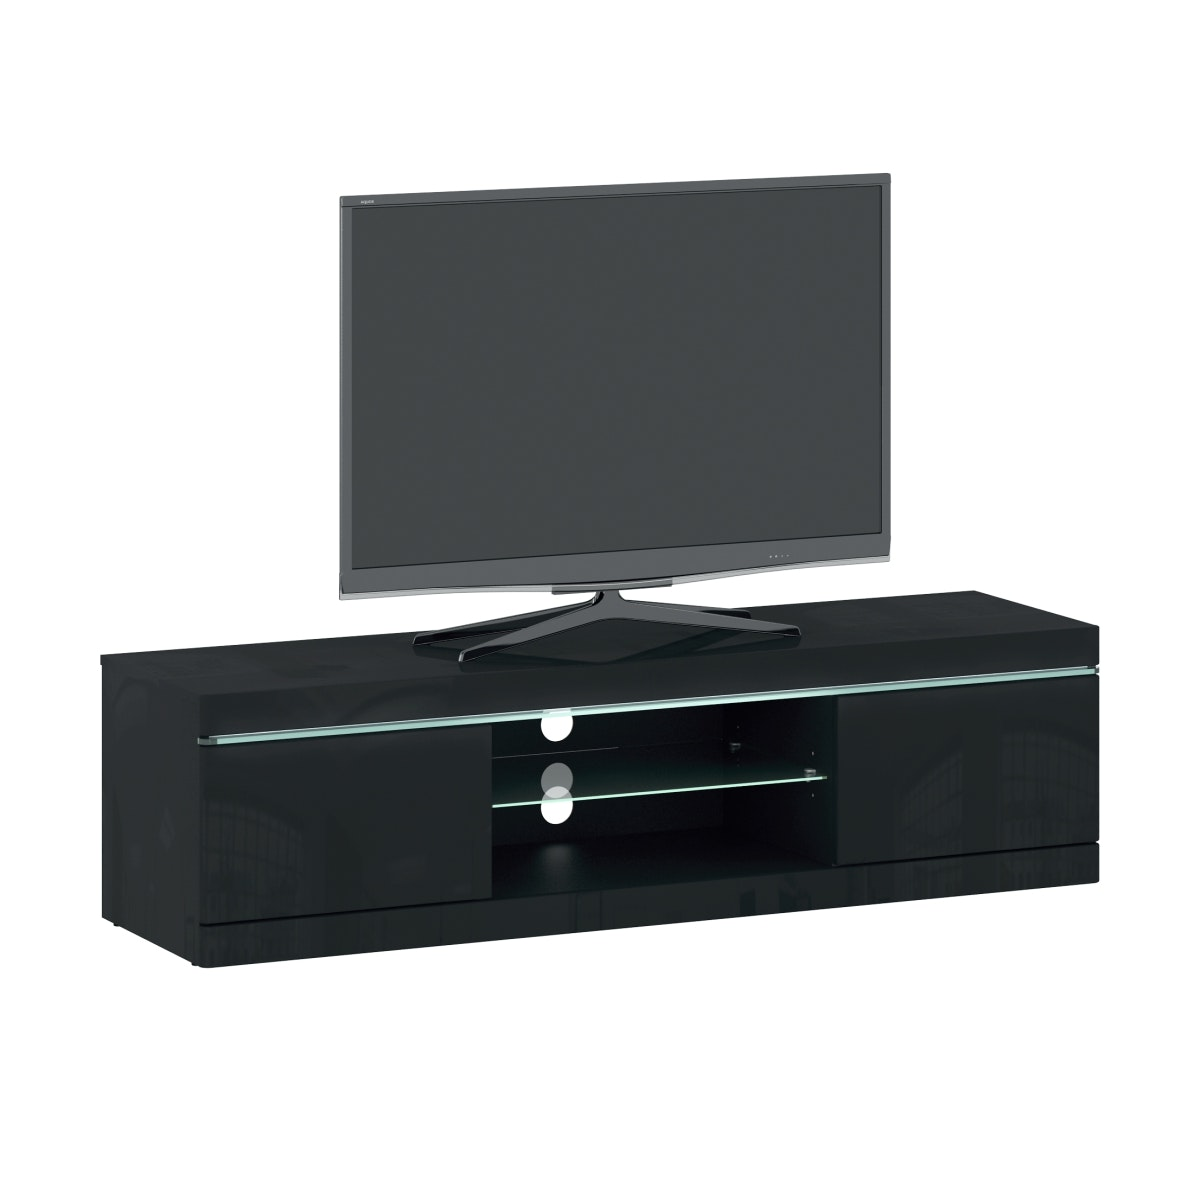 Pro Design Innova Rak TV 150 - Black Glossy